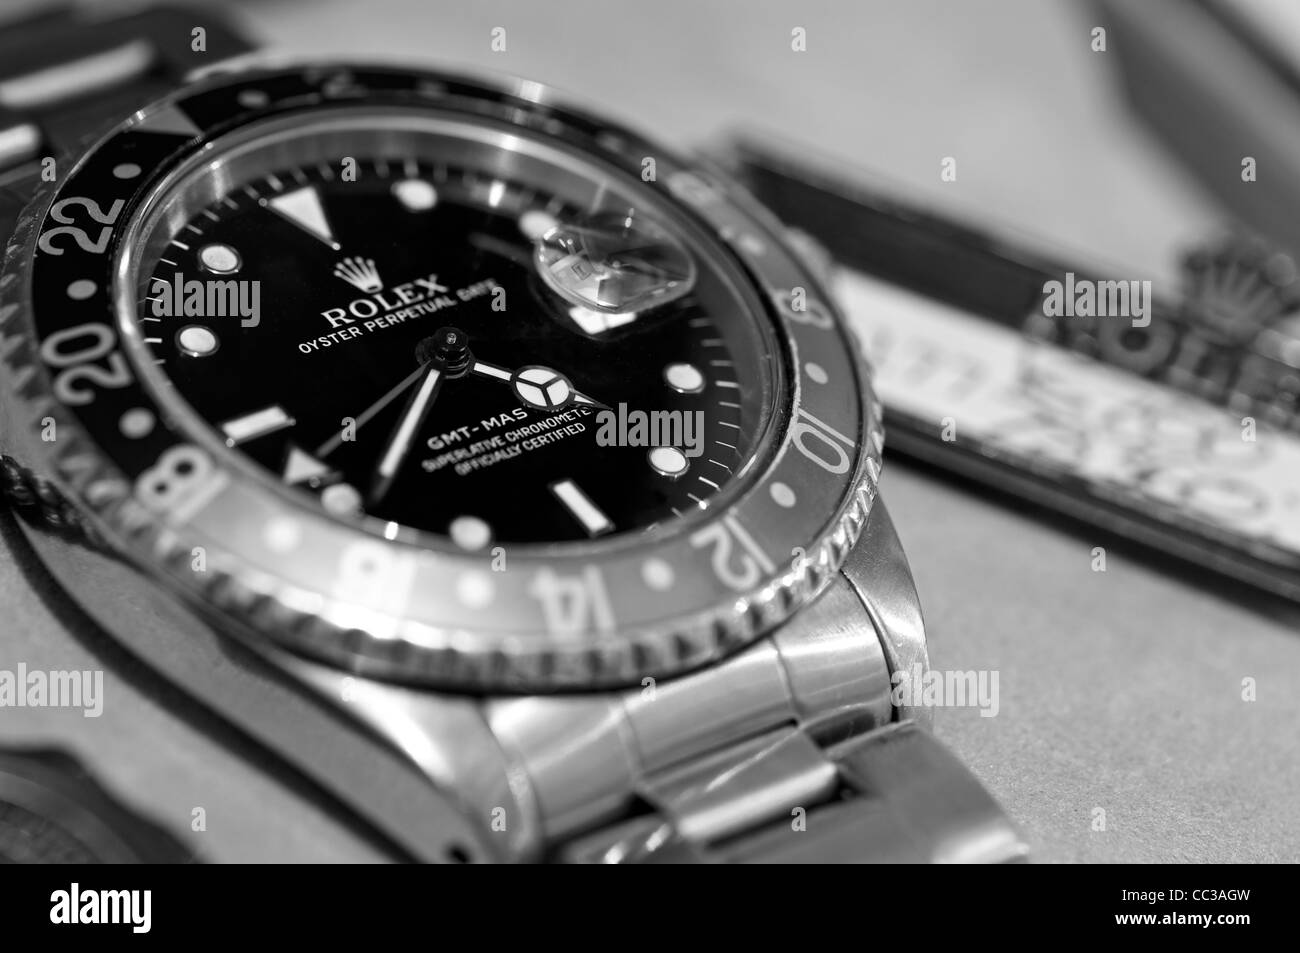 Rolex GMT Master chronograph model 16700 circa.1990 with Pepsi dial. - Stock Image